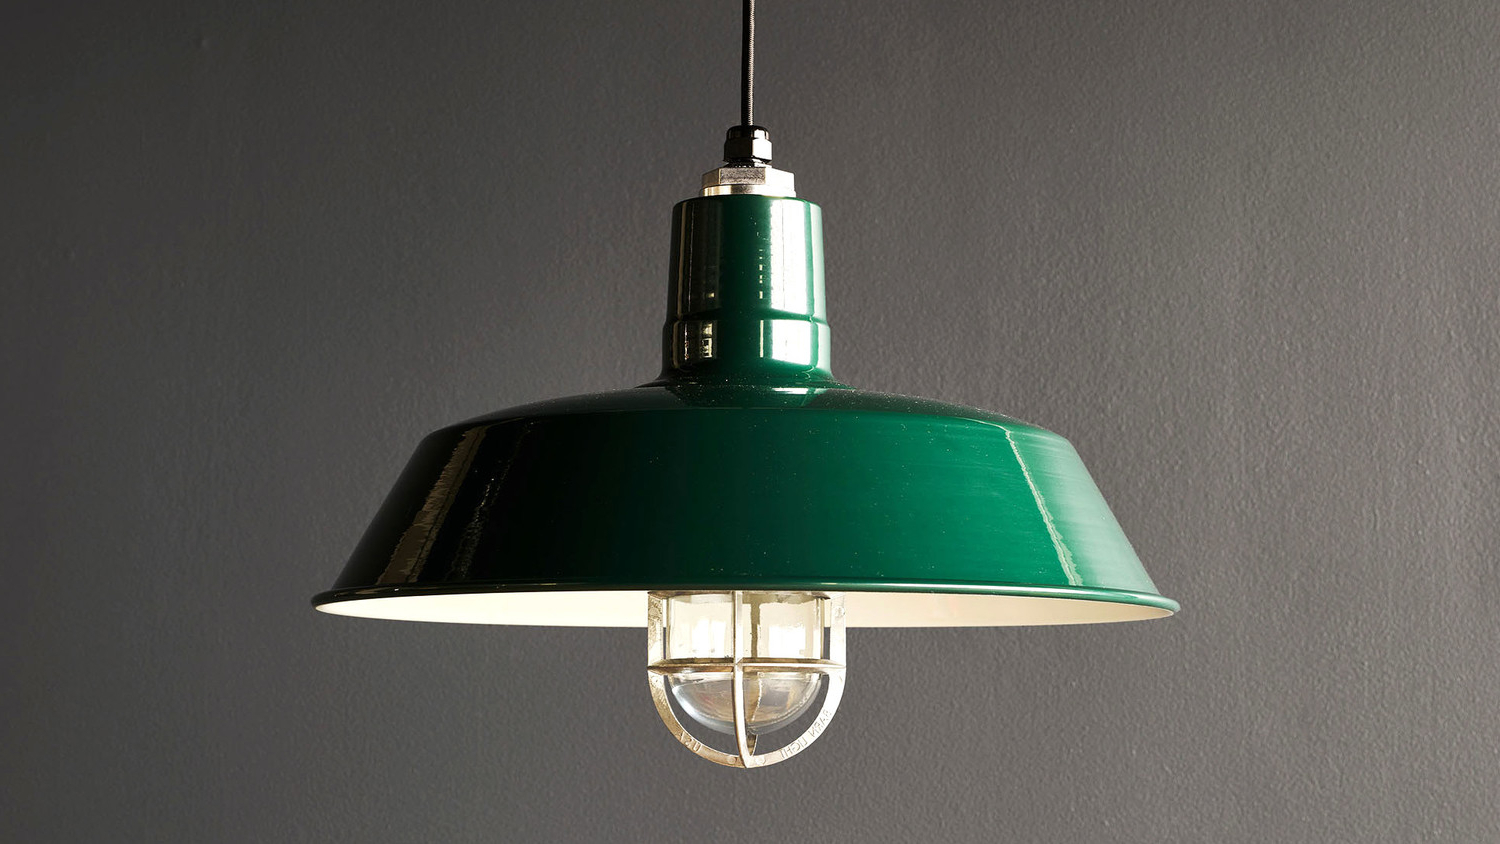 Most Recently Released Ammerman 1 Light Cone Pendants Pertaining To Special Prices On Serena 1 Light Cone Pendant Ivy Bronx (View 7 of 25)